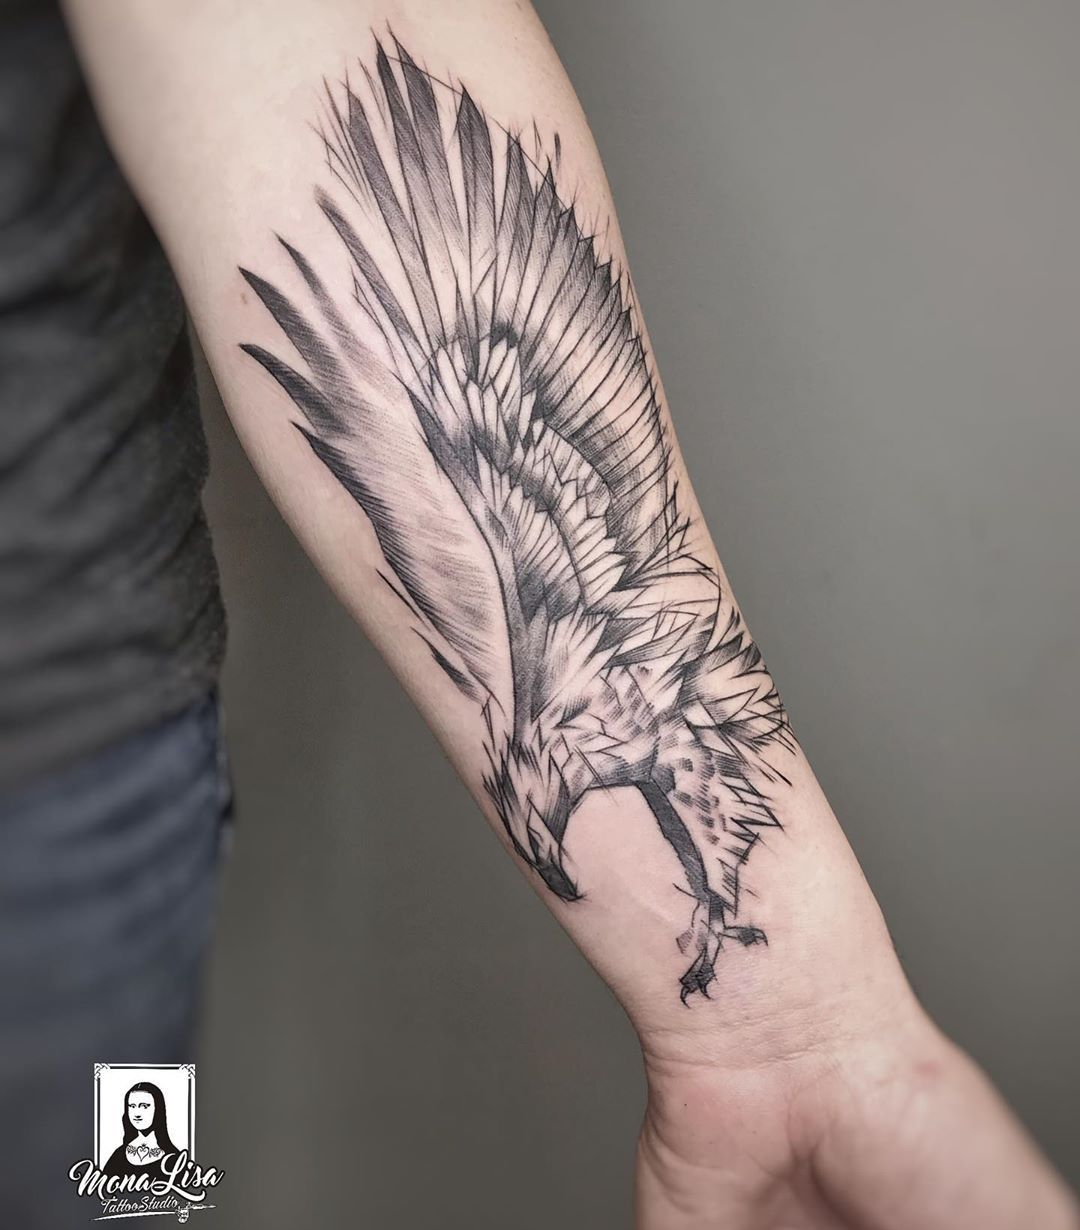 #tattoo #tattoos #tattooart #sketchtattoo #sketchytattoo #birdtattoo #wingstattoo #forearmtattoo #blacktattoo #graphictattoo #polandtattoos #białystoktattoo #monalisabialystok